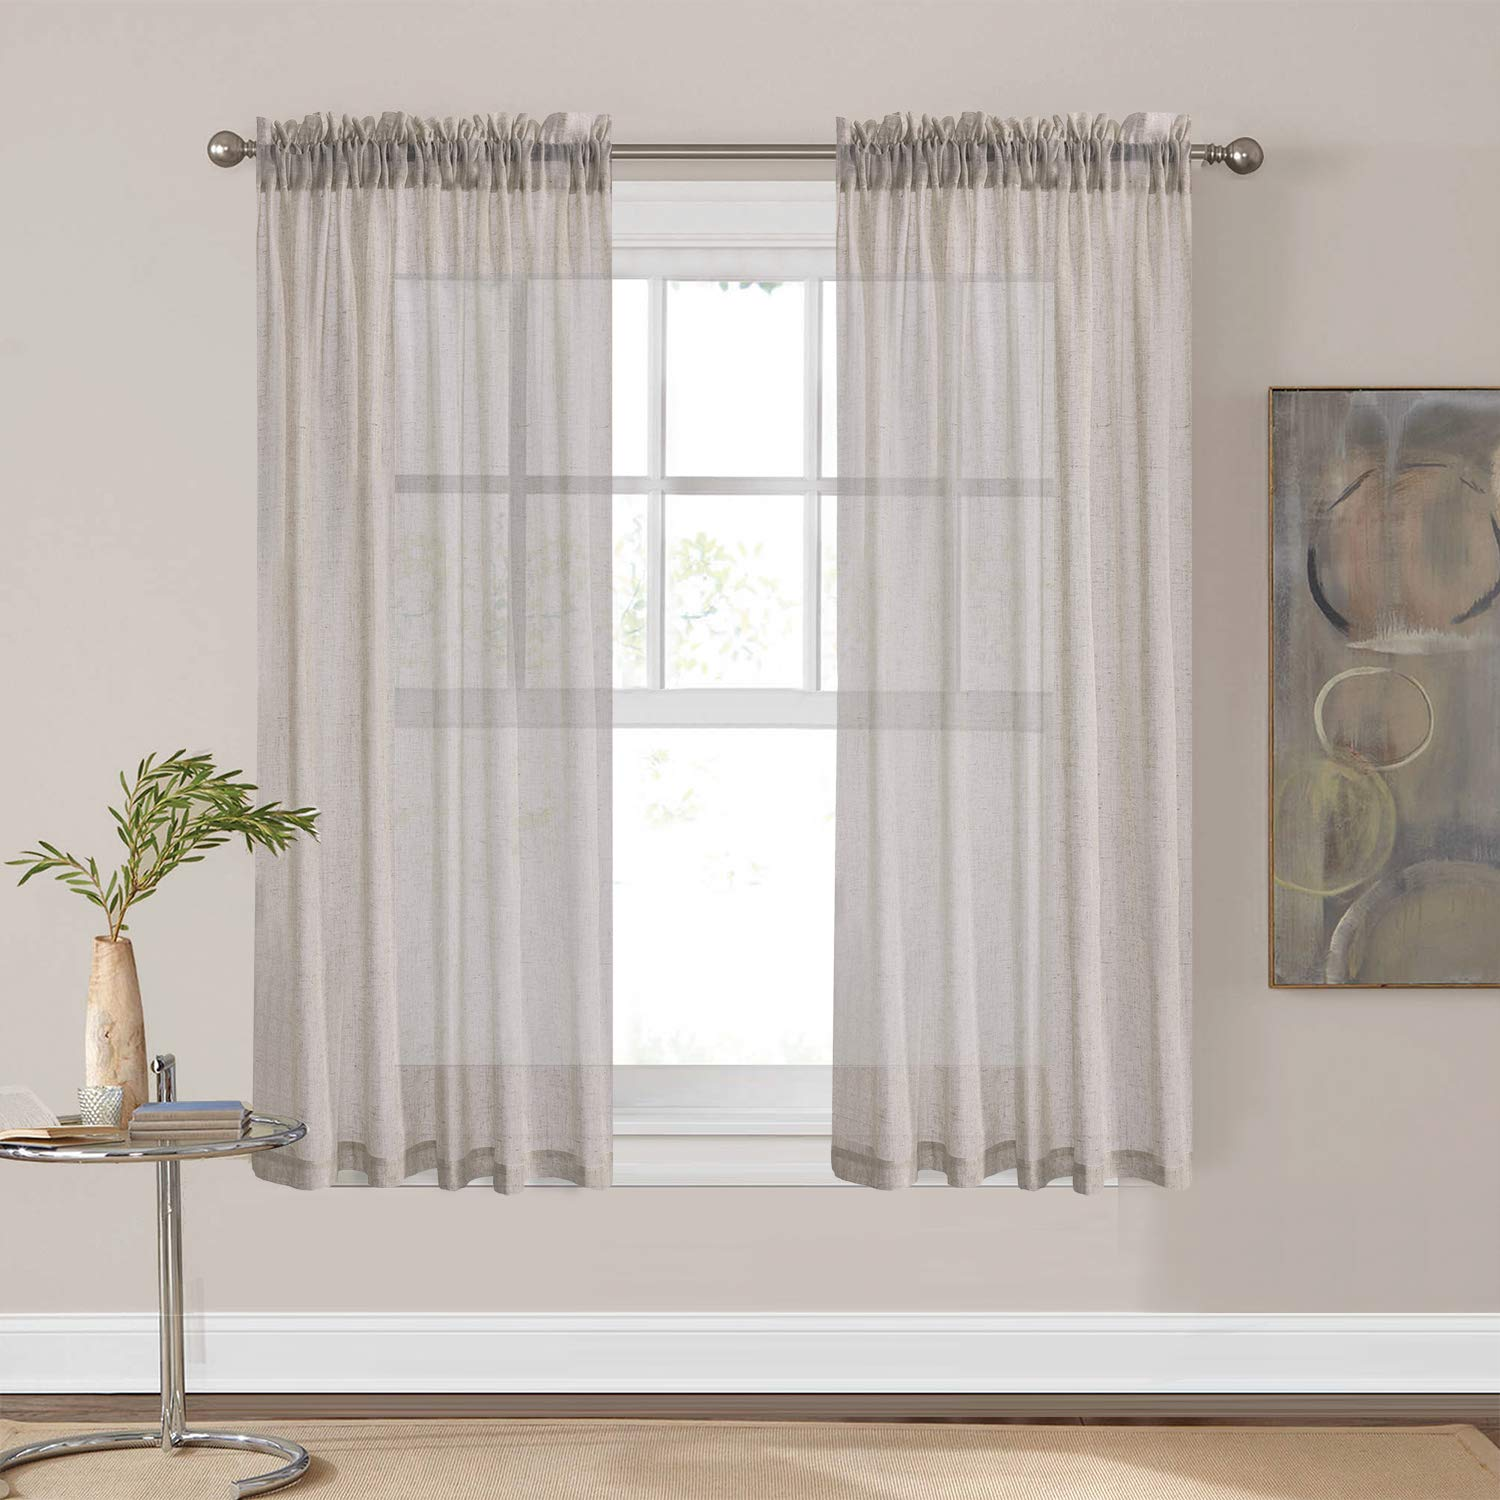 HOME BRILLIANT Soft Natrual Linen Sheer Curtains Premium Window Drapery for Bedroom, 2 Panels, 54 x 63 inches